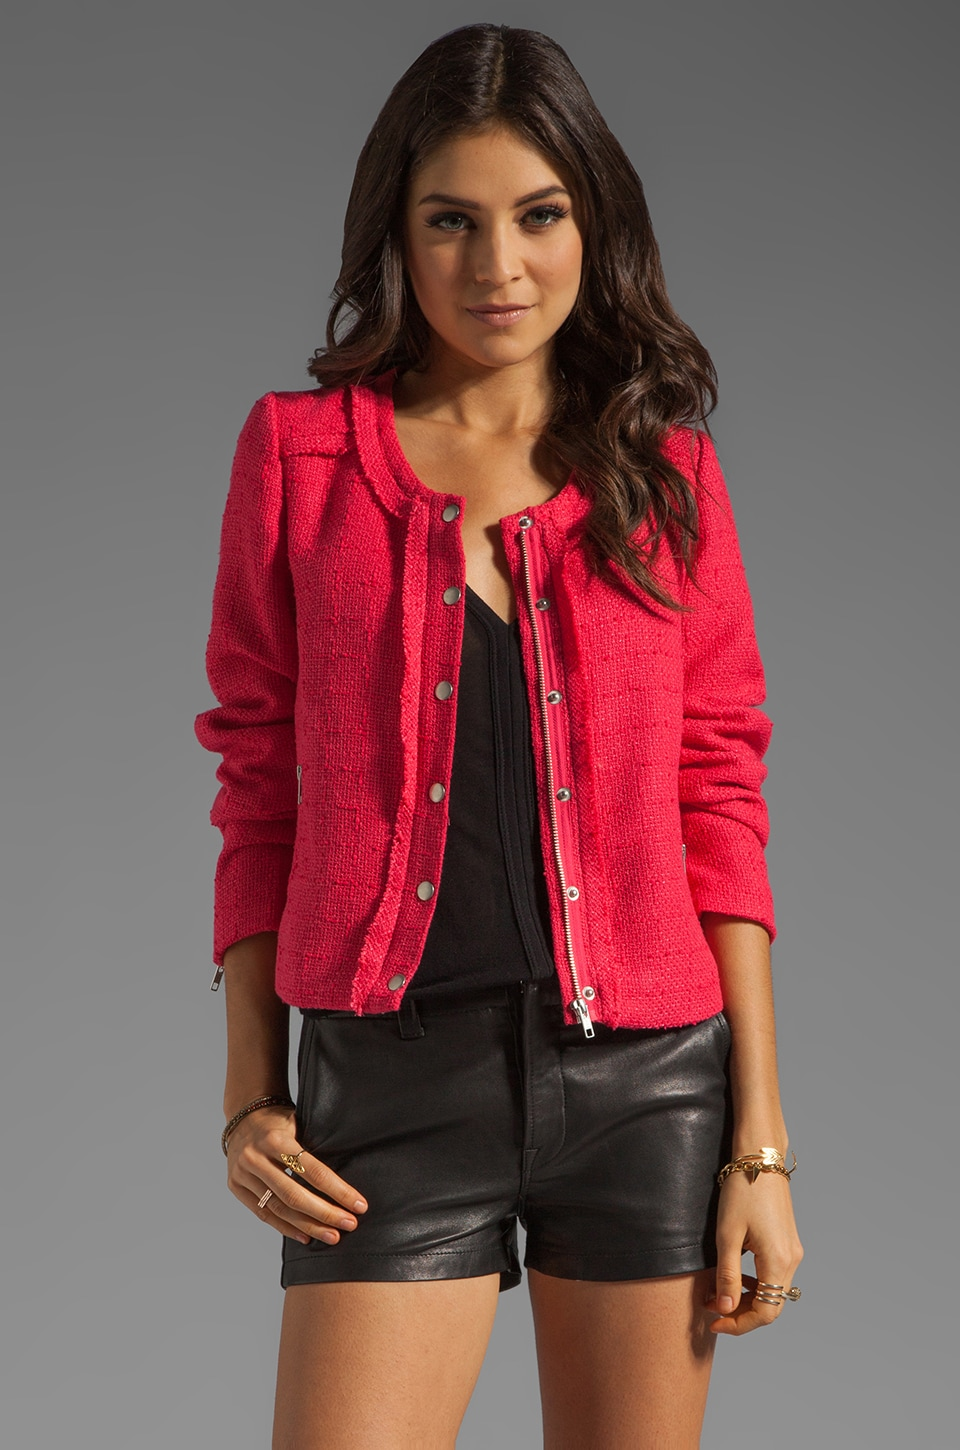 MM Couture by Miss Me Tweed Jacket in Fuchsia